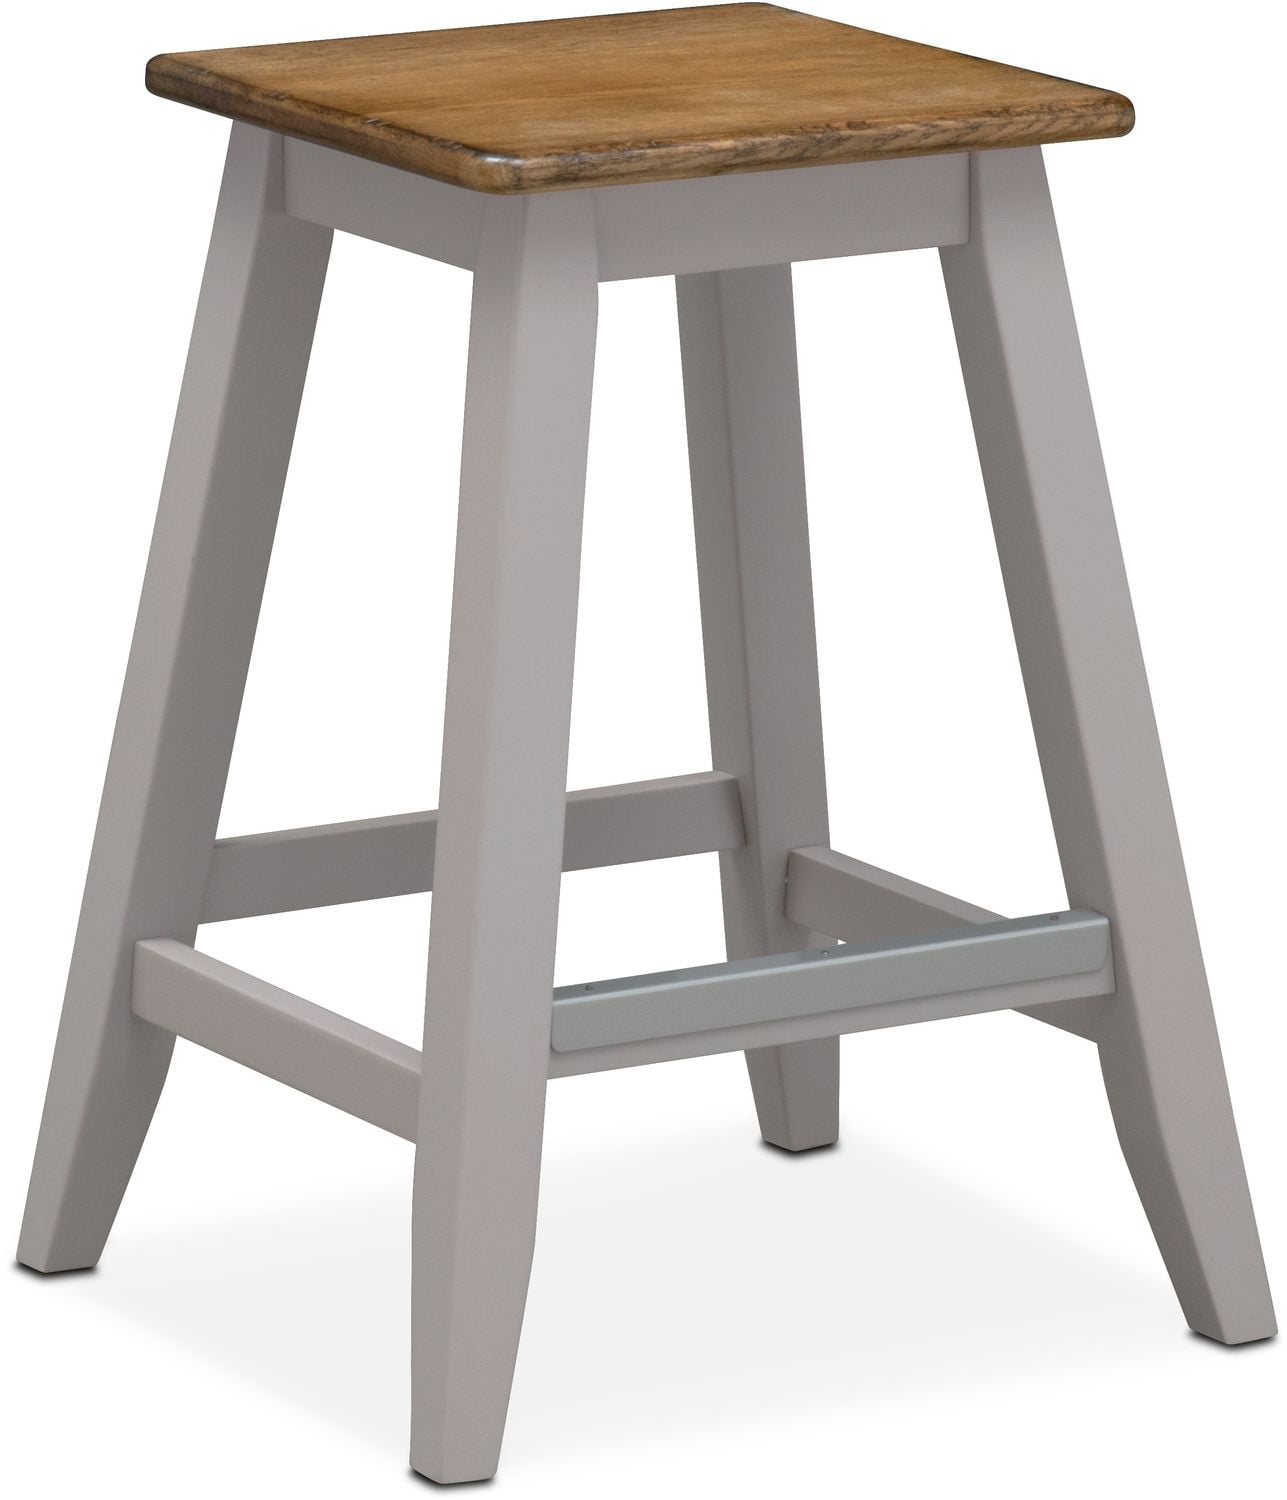 Nantucket Counter Height Stool   Oak And Gray